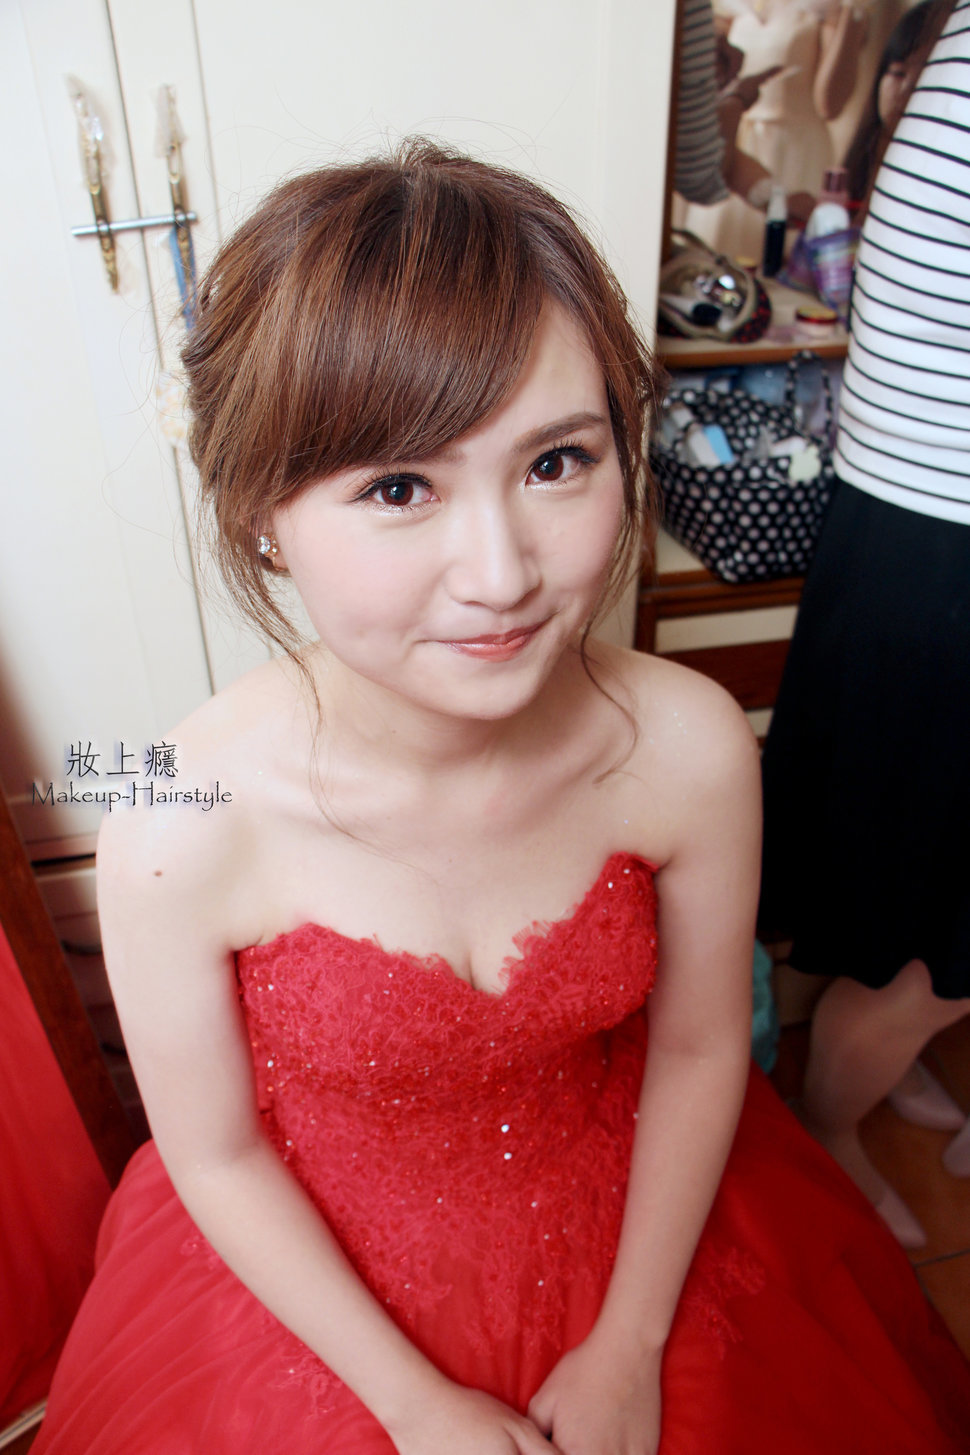 a拷貝 - Makeup-hairstyle 妝上癮 - 結婚吧